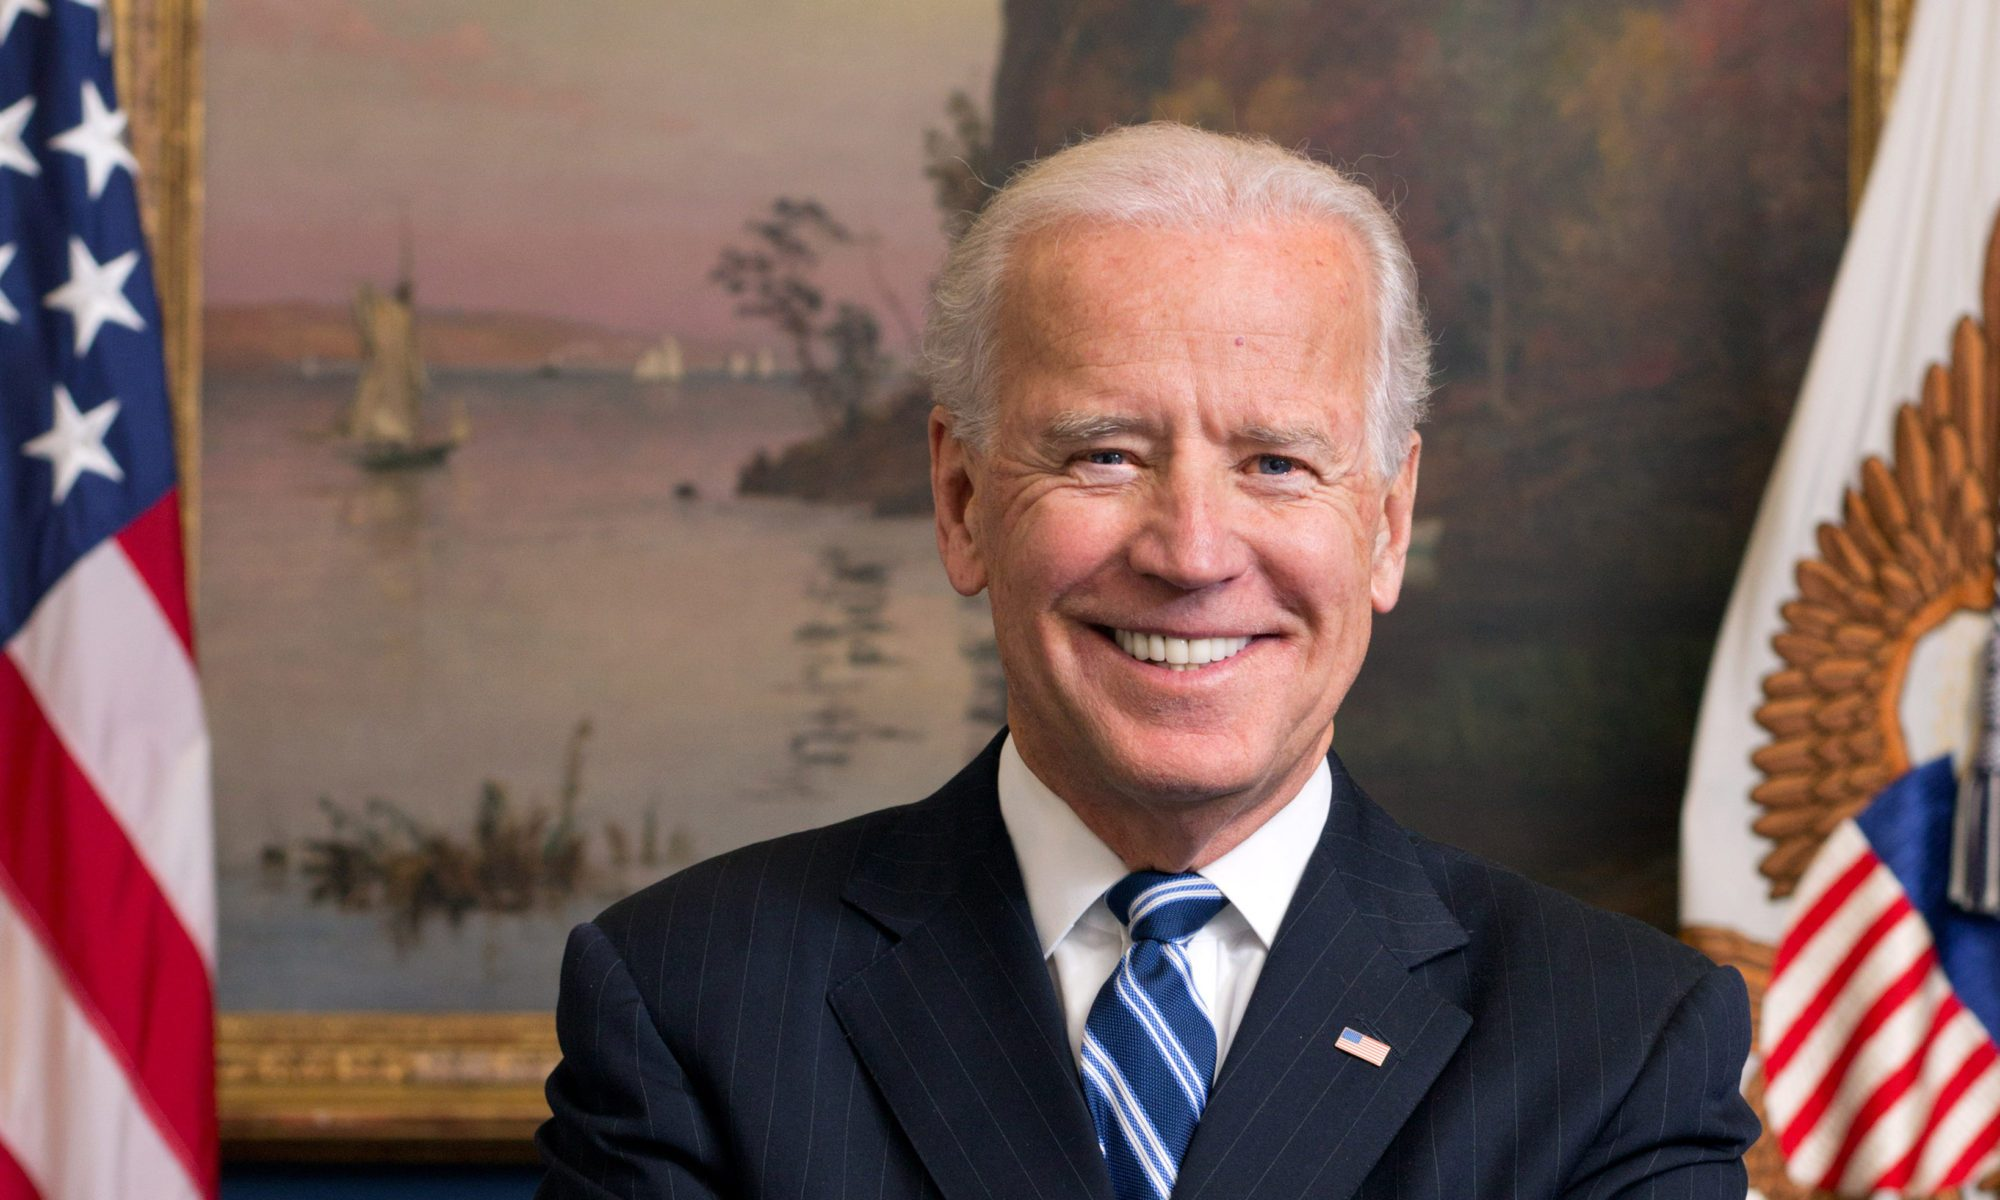 Joseph R. Biden Jr. in the White House